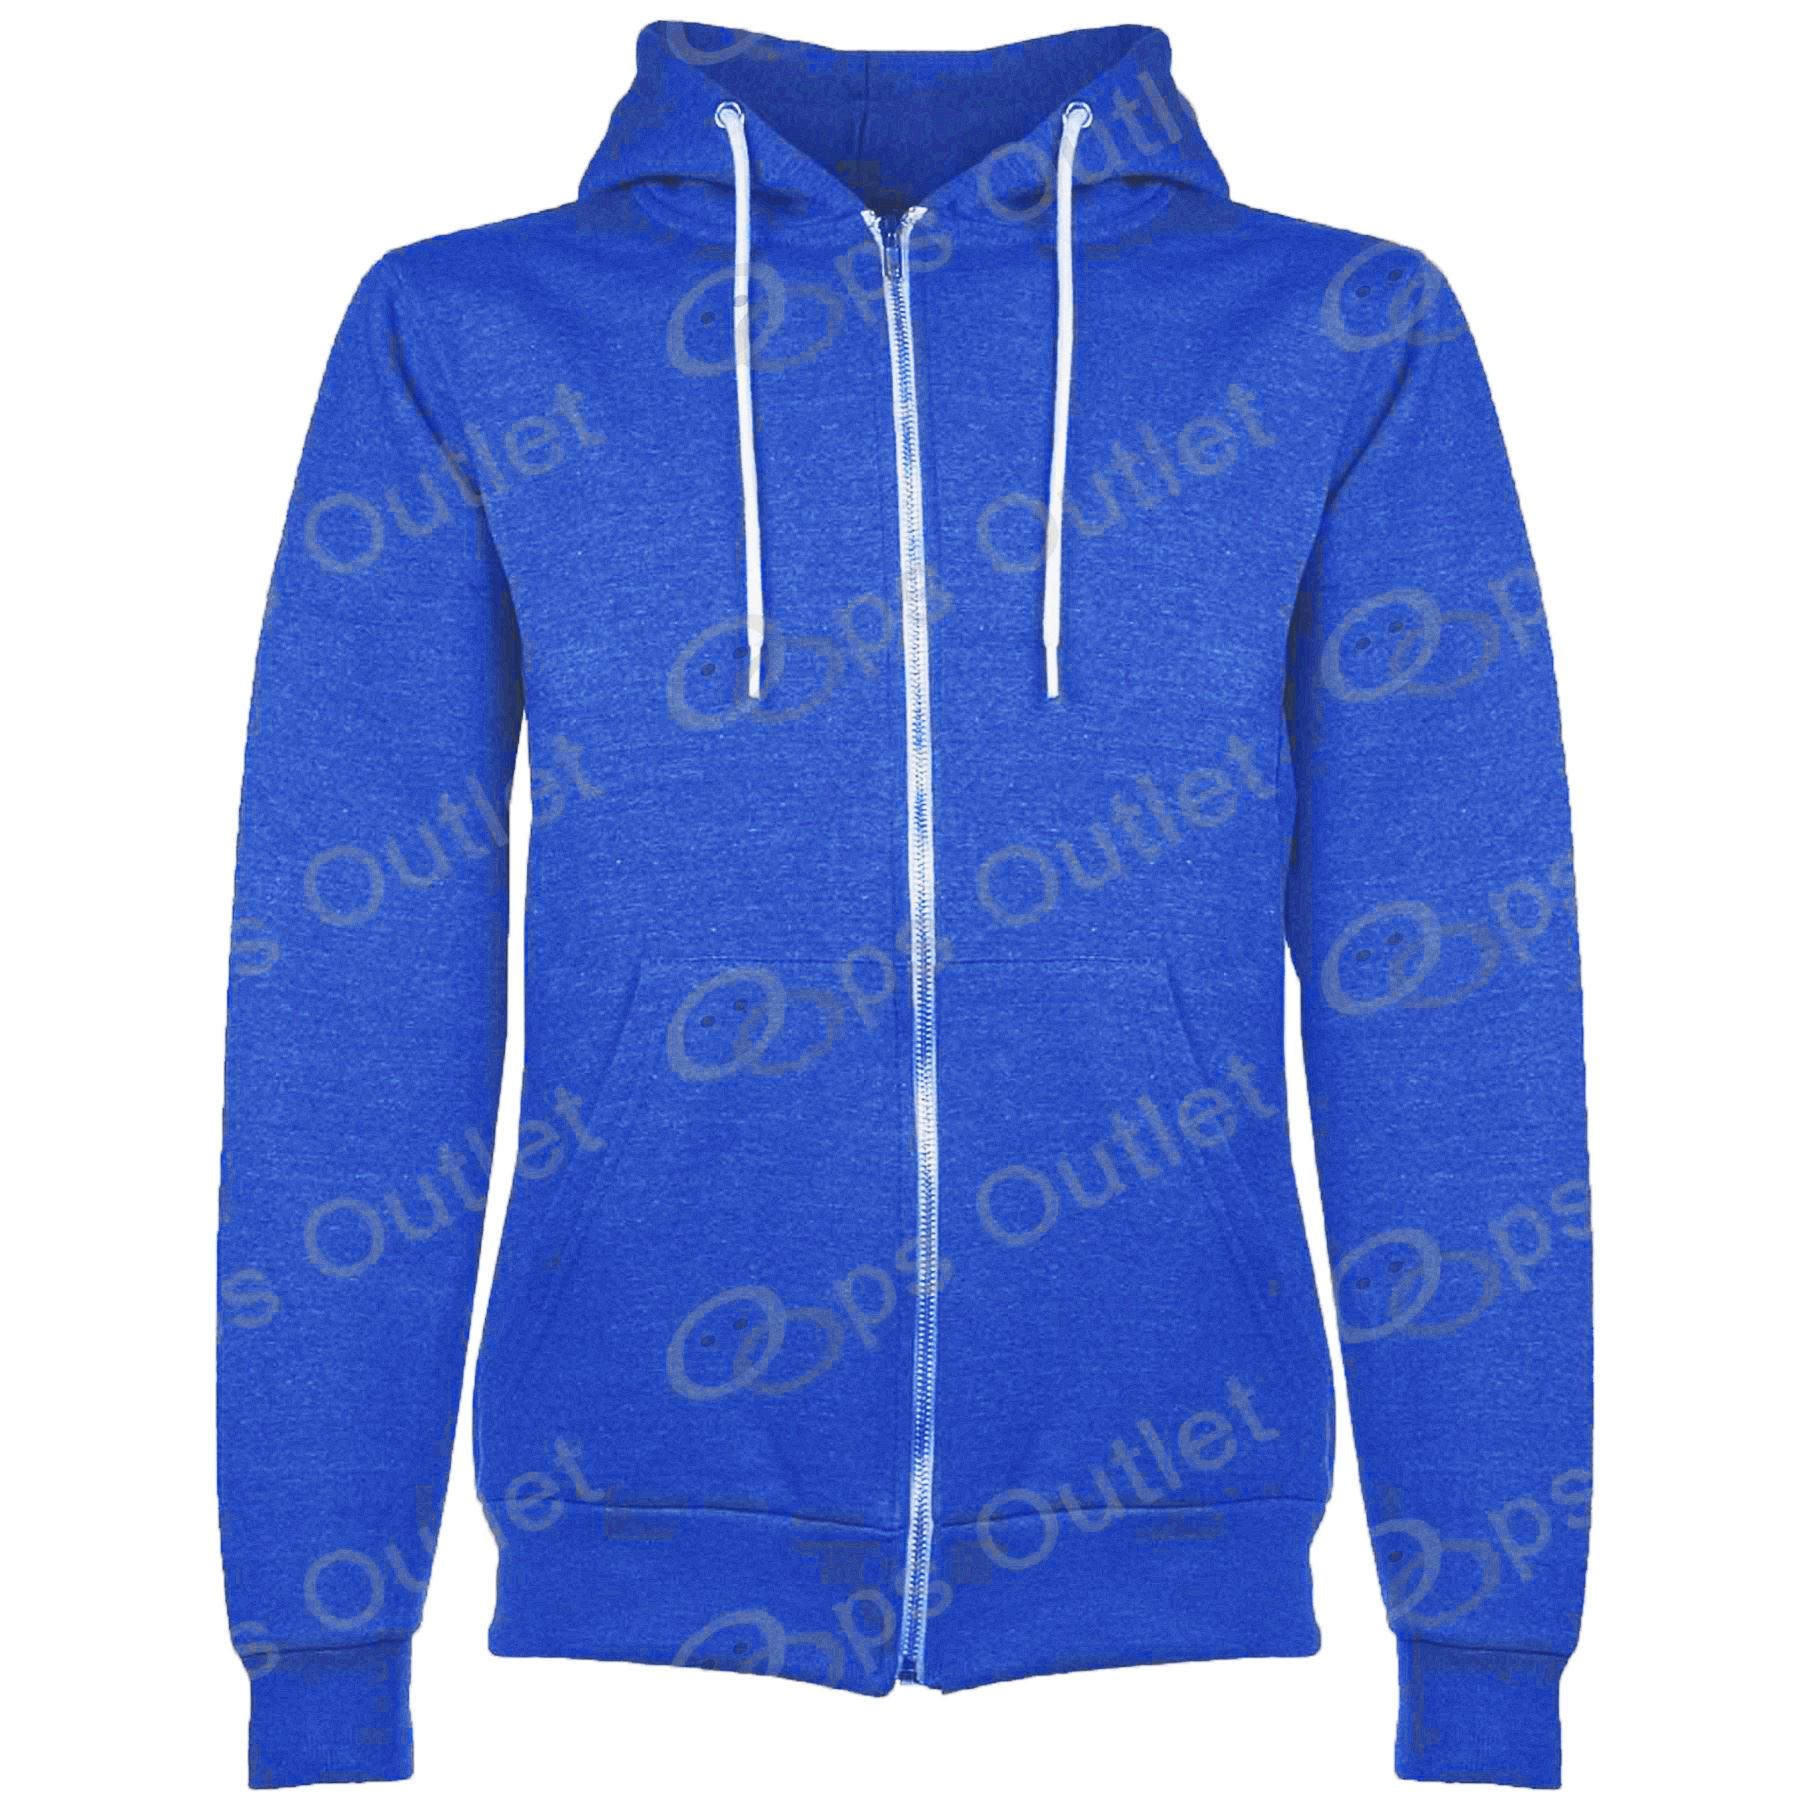 New-Kids-Zip-Up-Fleece-Plain-Childrens-Sweatshirt-Hoodie-Boys-Hoody-Jacket-Top